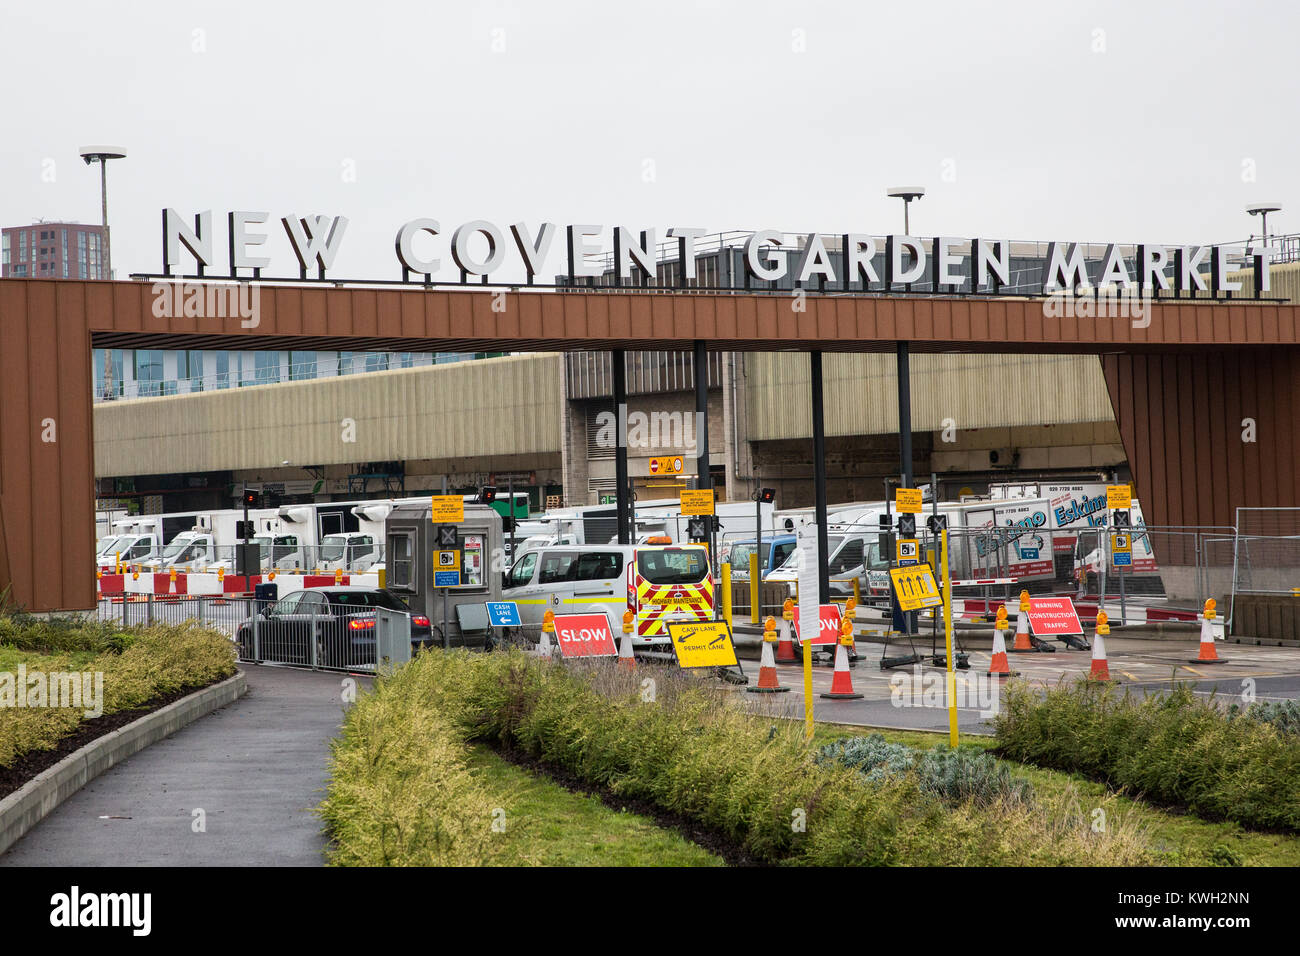 London, UK. 20th December, 2017. The entrance to New Covent Garden Market at Nine Elms. - Stock Image